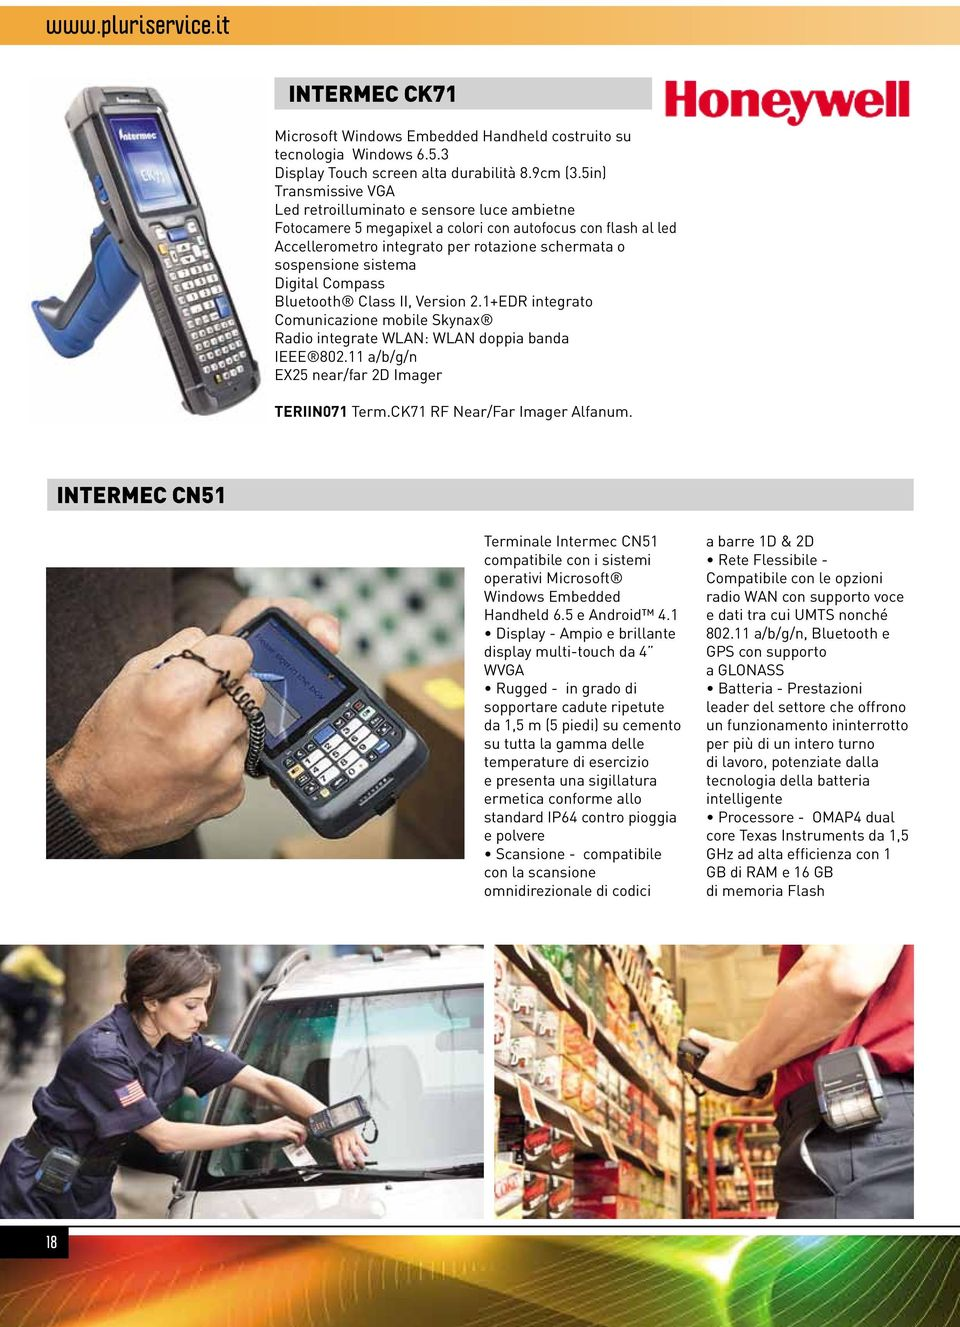 Digital Compass Bluetooth Class II, Version 2.1+EDR integrato Comunicazione mobile Skynax Radio integrate WLAN: WLAN doppia banda IEEE 802.11 a/b/g/n EX25 near/far 2D Imager TERIIN071 Term.